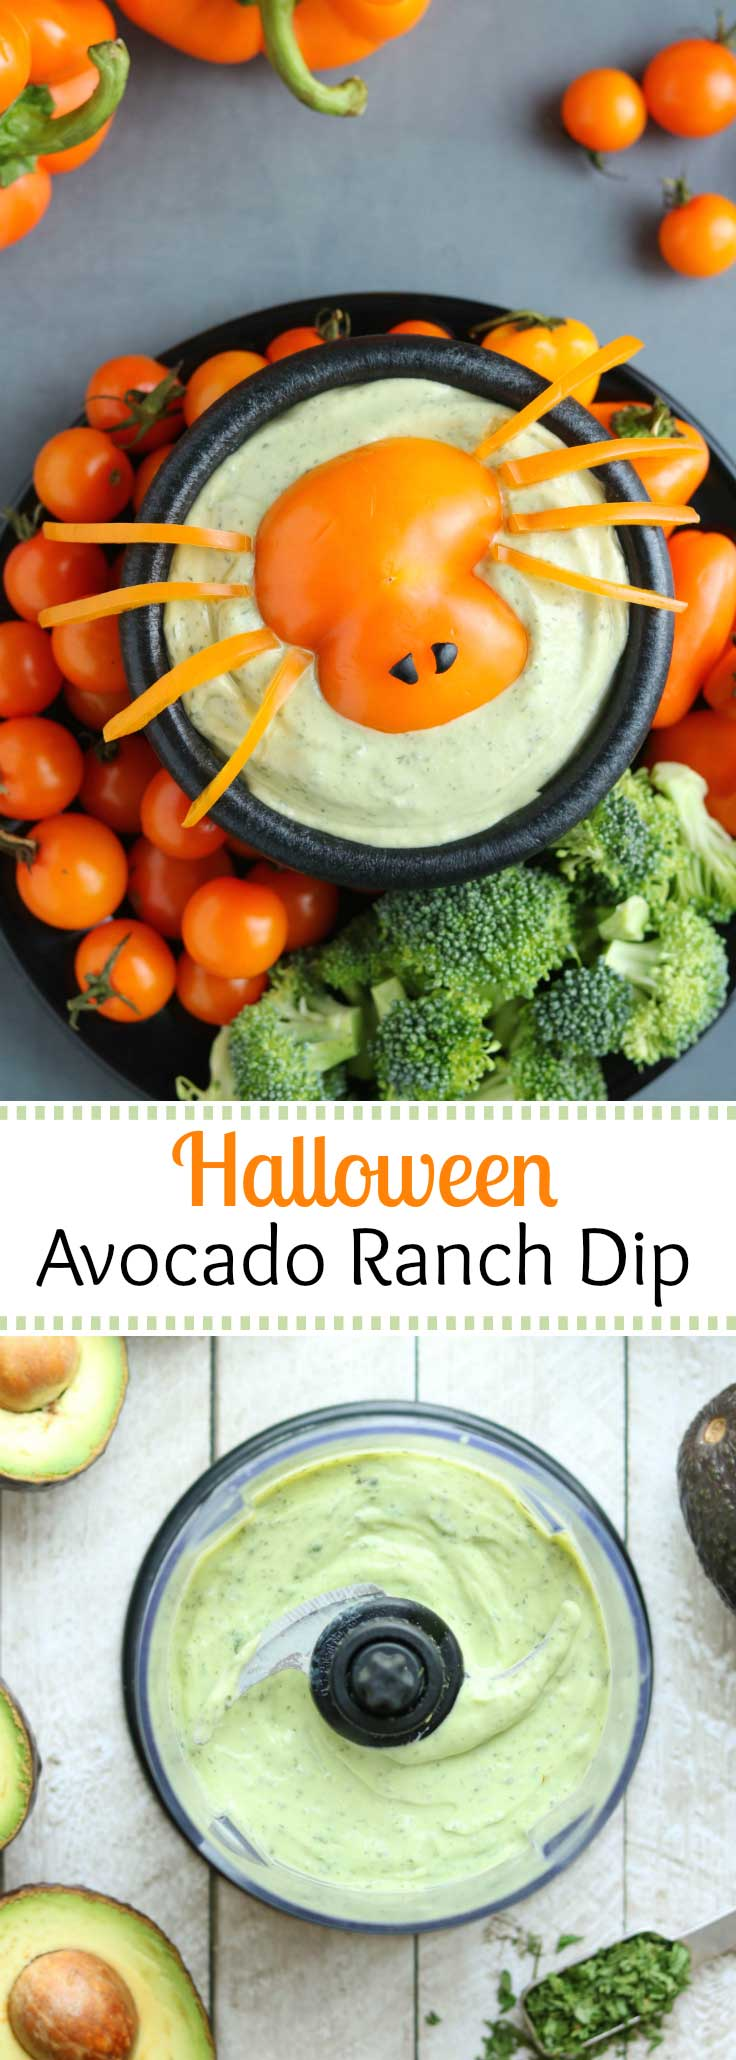 A perfect Halloween appetizer! Top our pretty green Avocado Ranch Dip with our easy-to-make pepper spider! And, since it's ready in just minutes, this appetizer recipe is great for busy hostesses and last-minute parties. So creamy and delicious, like a cross between traditional ranch dip and guacamole! #Halloween #healthyHalloween #Halloweenrecipe #avocado #greekyogurt #appetizer #healthysnacks #appetizerfood #holidayrecipes #healthyrecipes #ranchdip #veggiedip | www.TwoHealthyKitchens.com